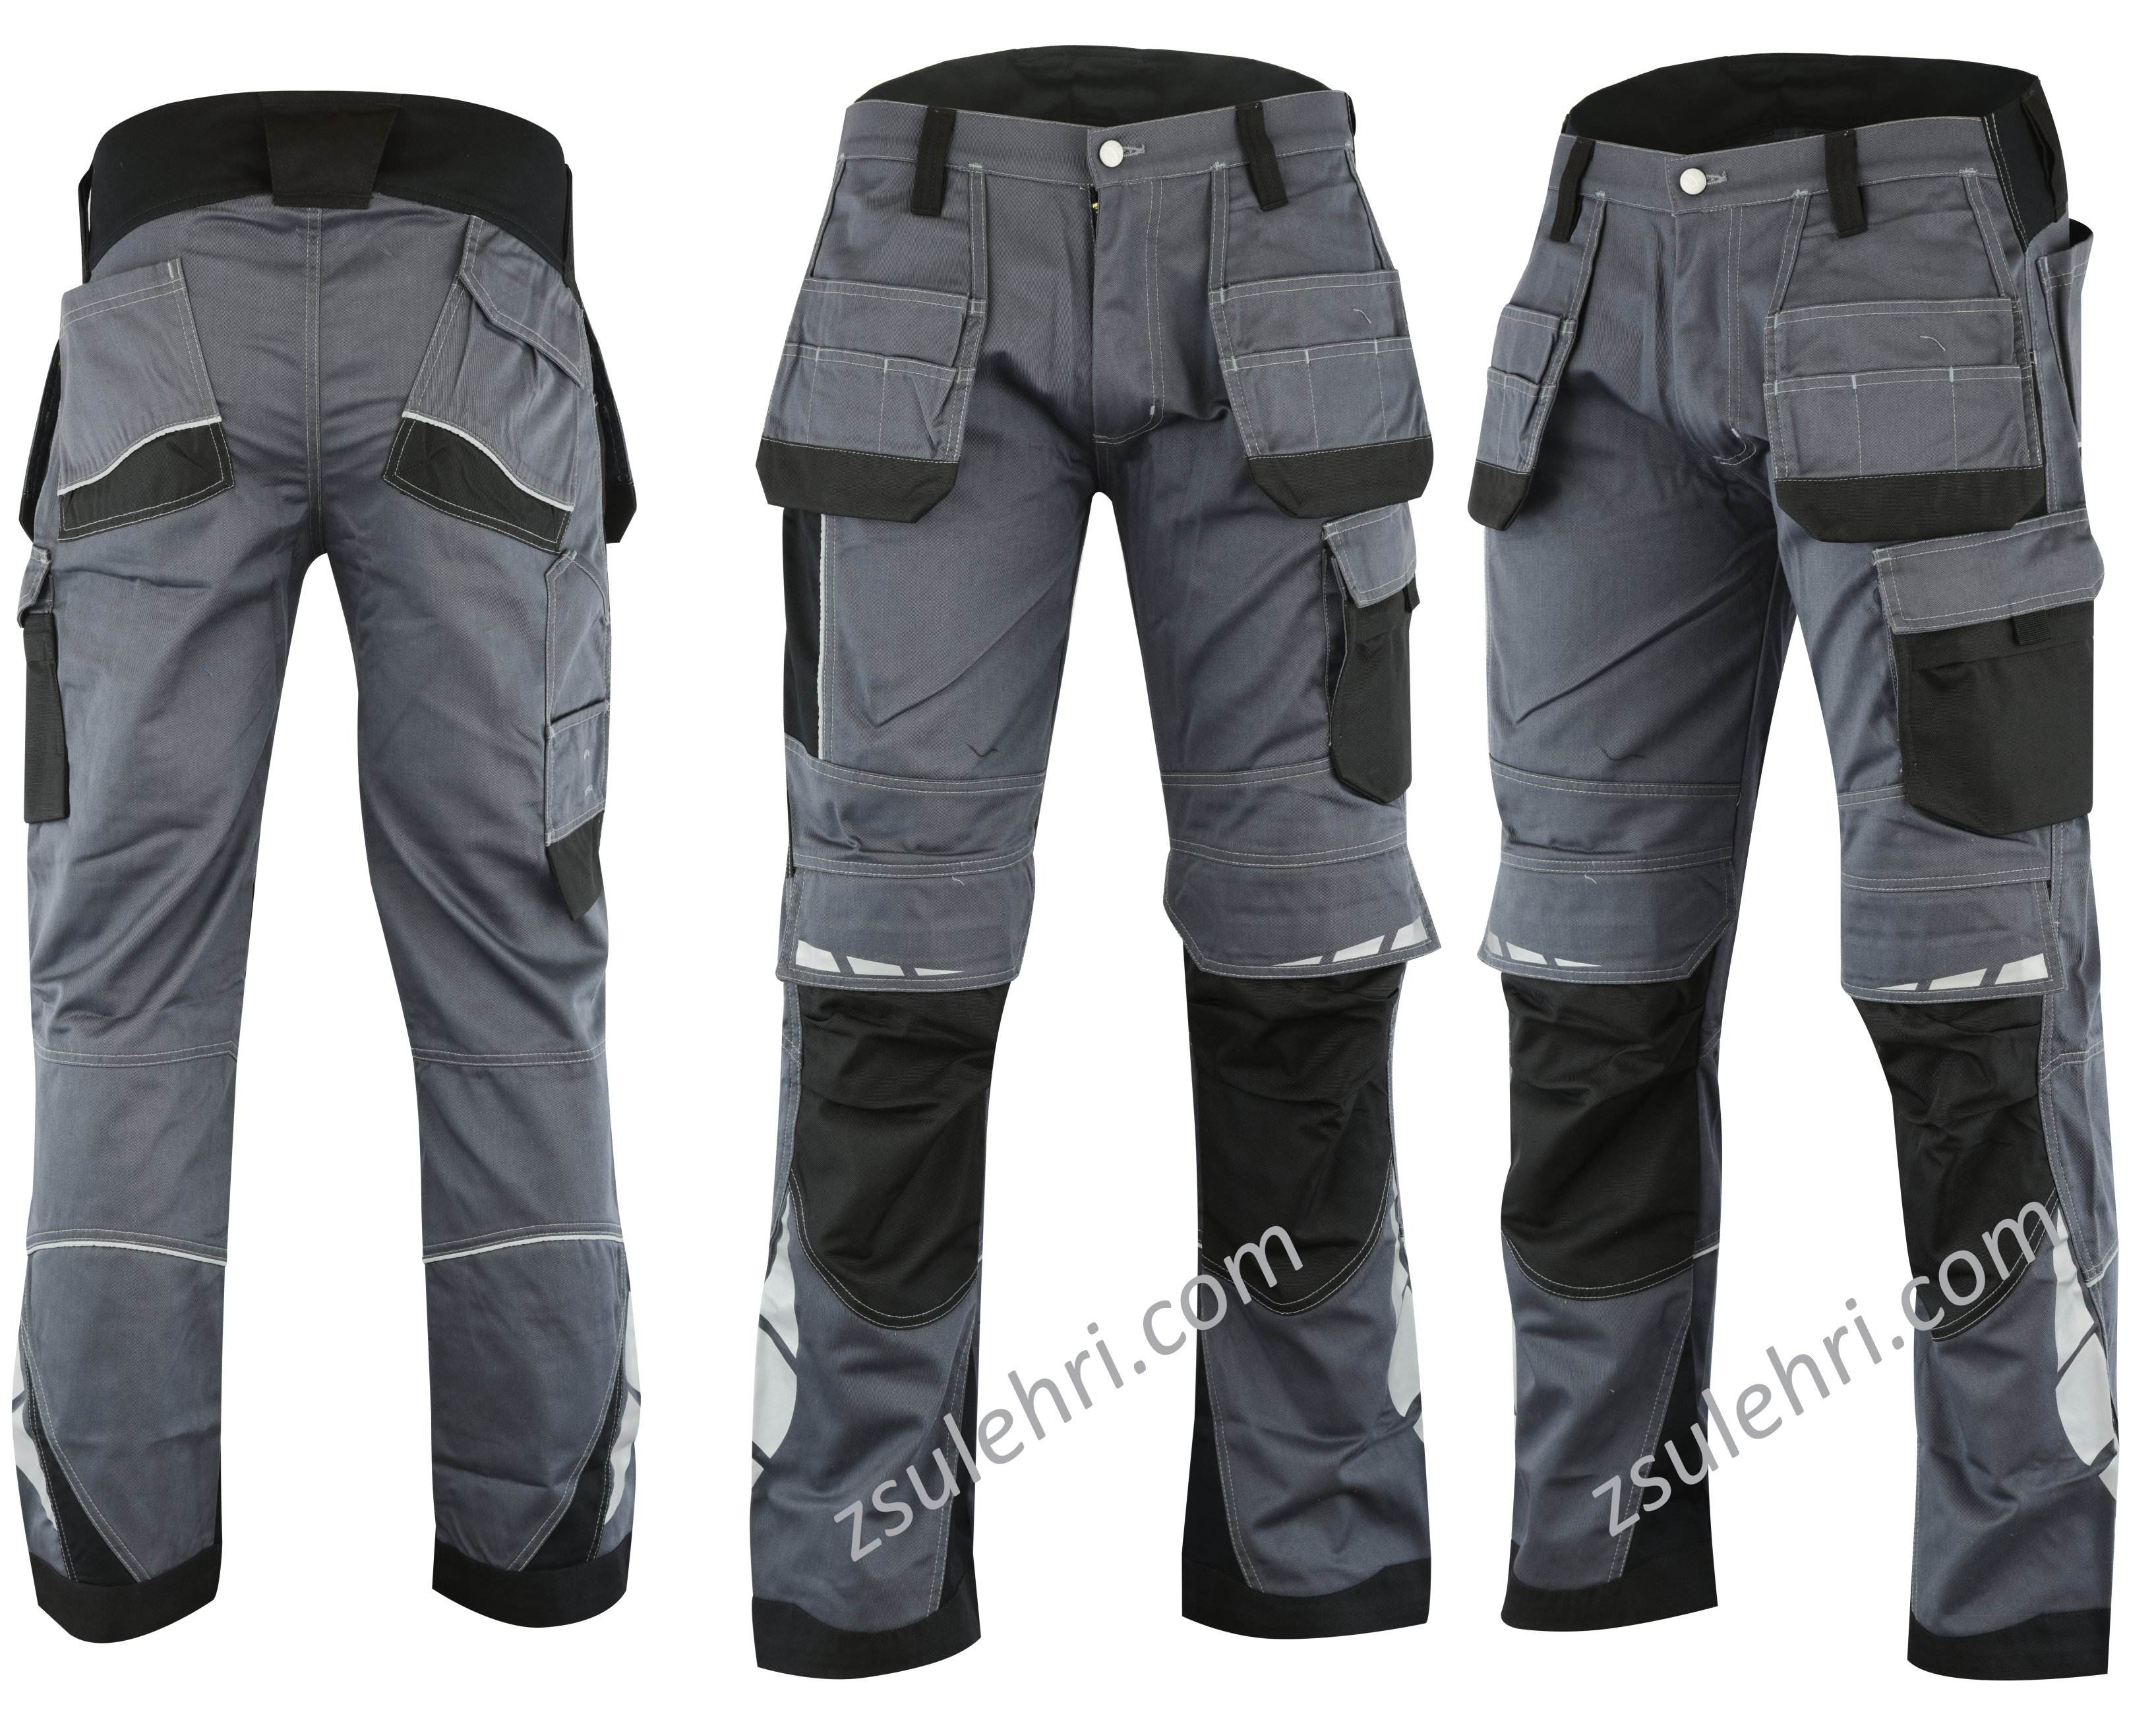 Work pants with Knee pockets Industrial pants Safety Pants Worker trousers